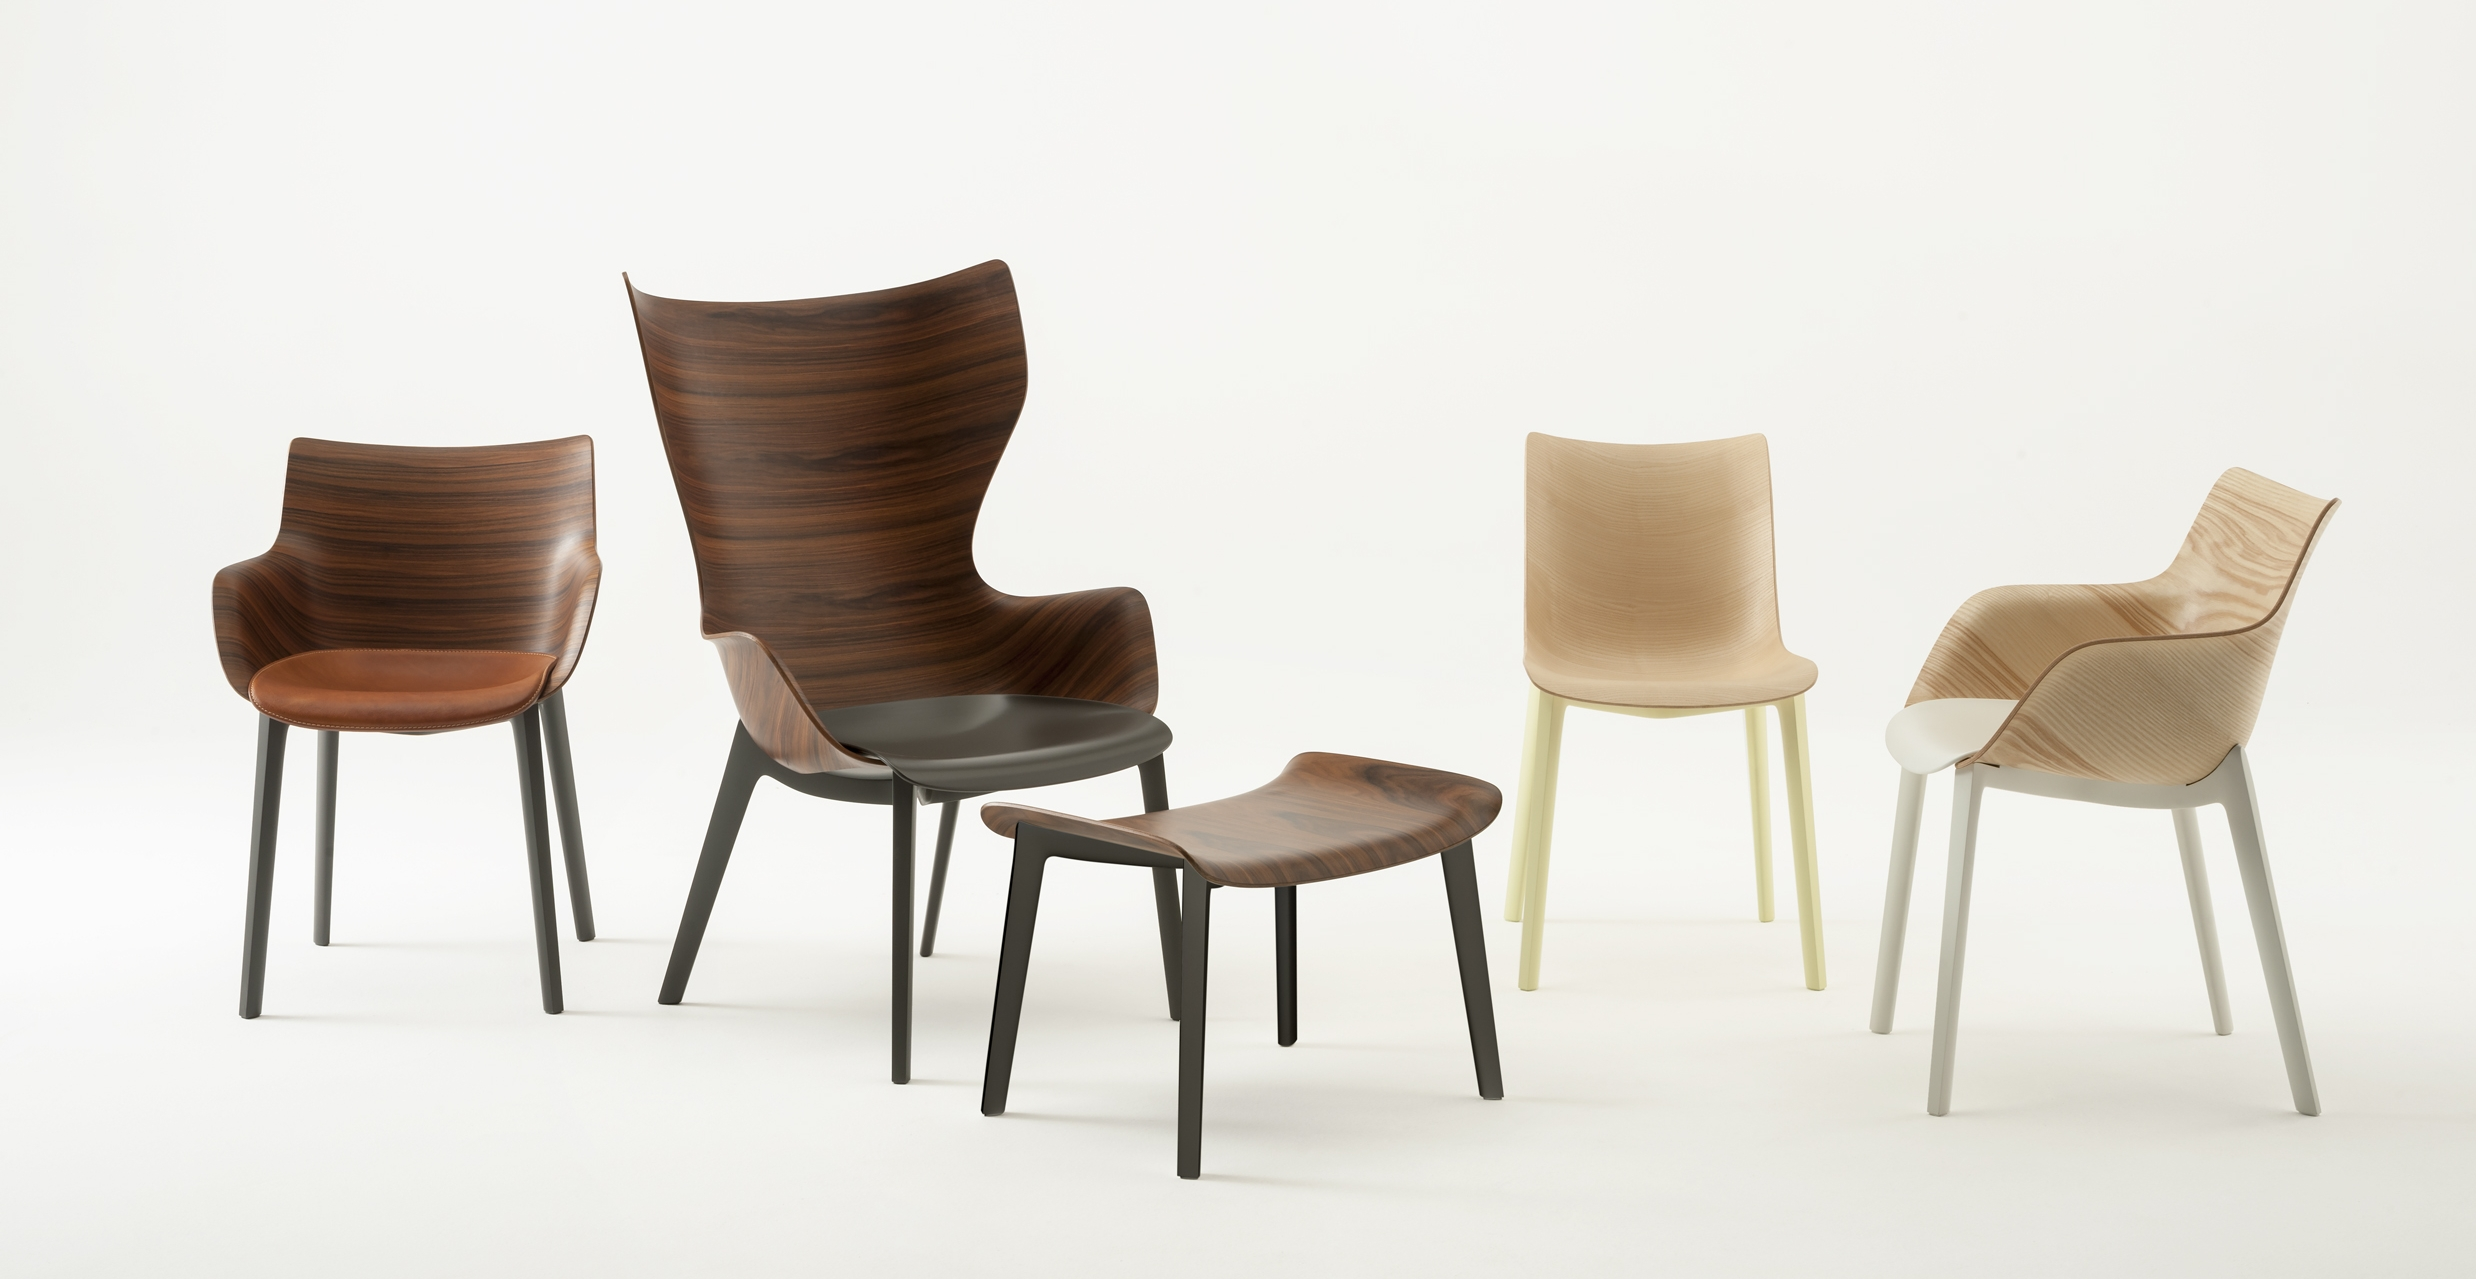 The Woody collection designed by Philippe Starck for Kartell.